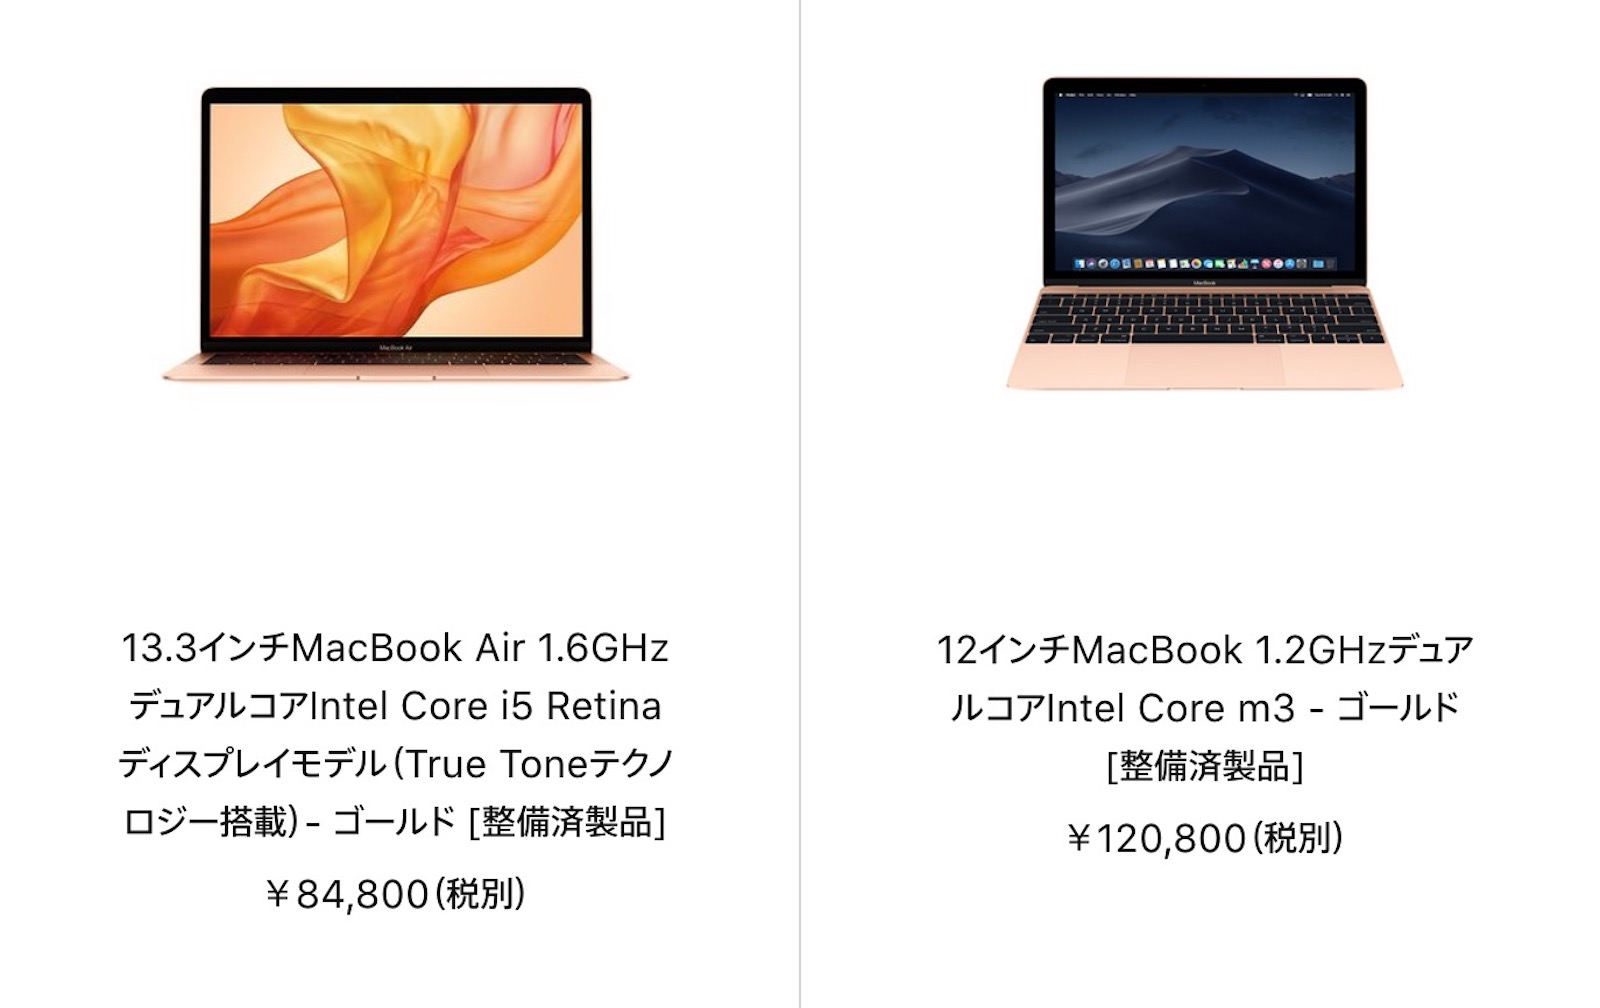 Macbook 12inch and macbookair refurbished